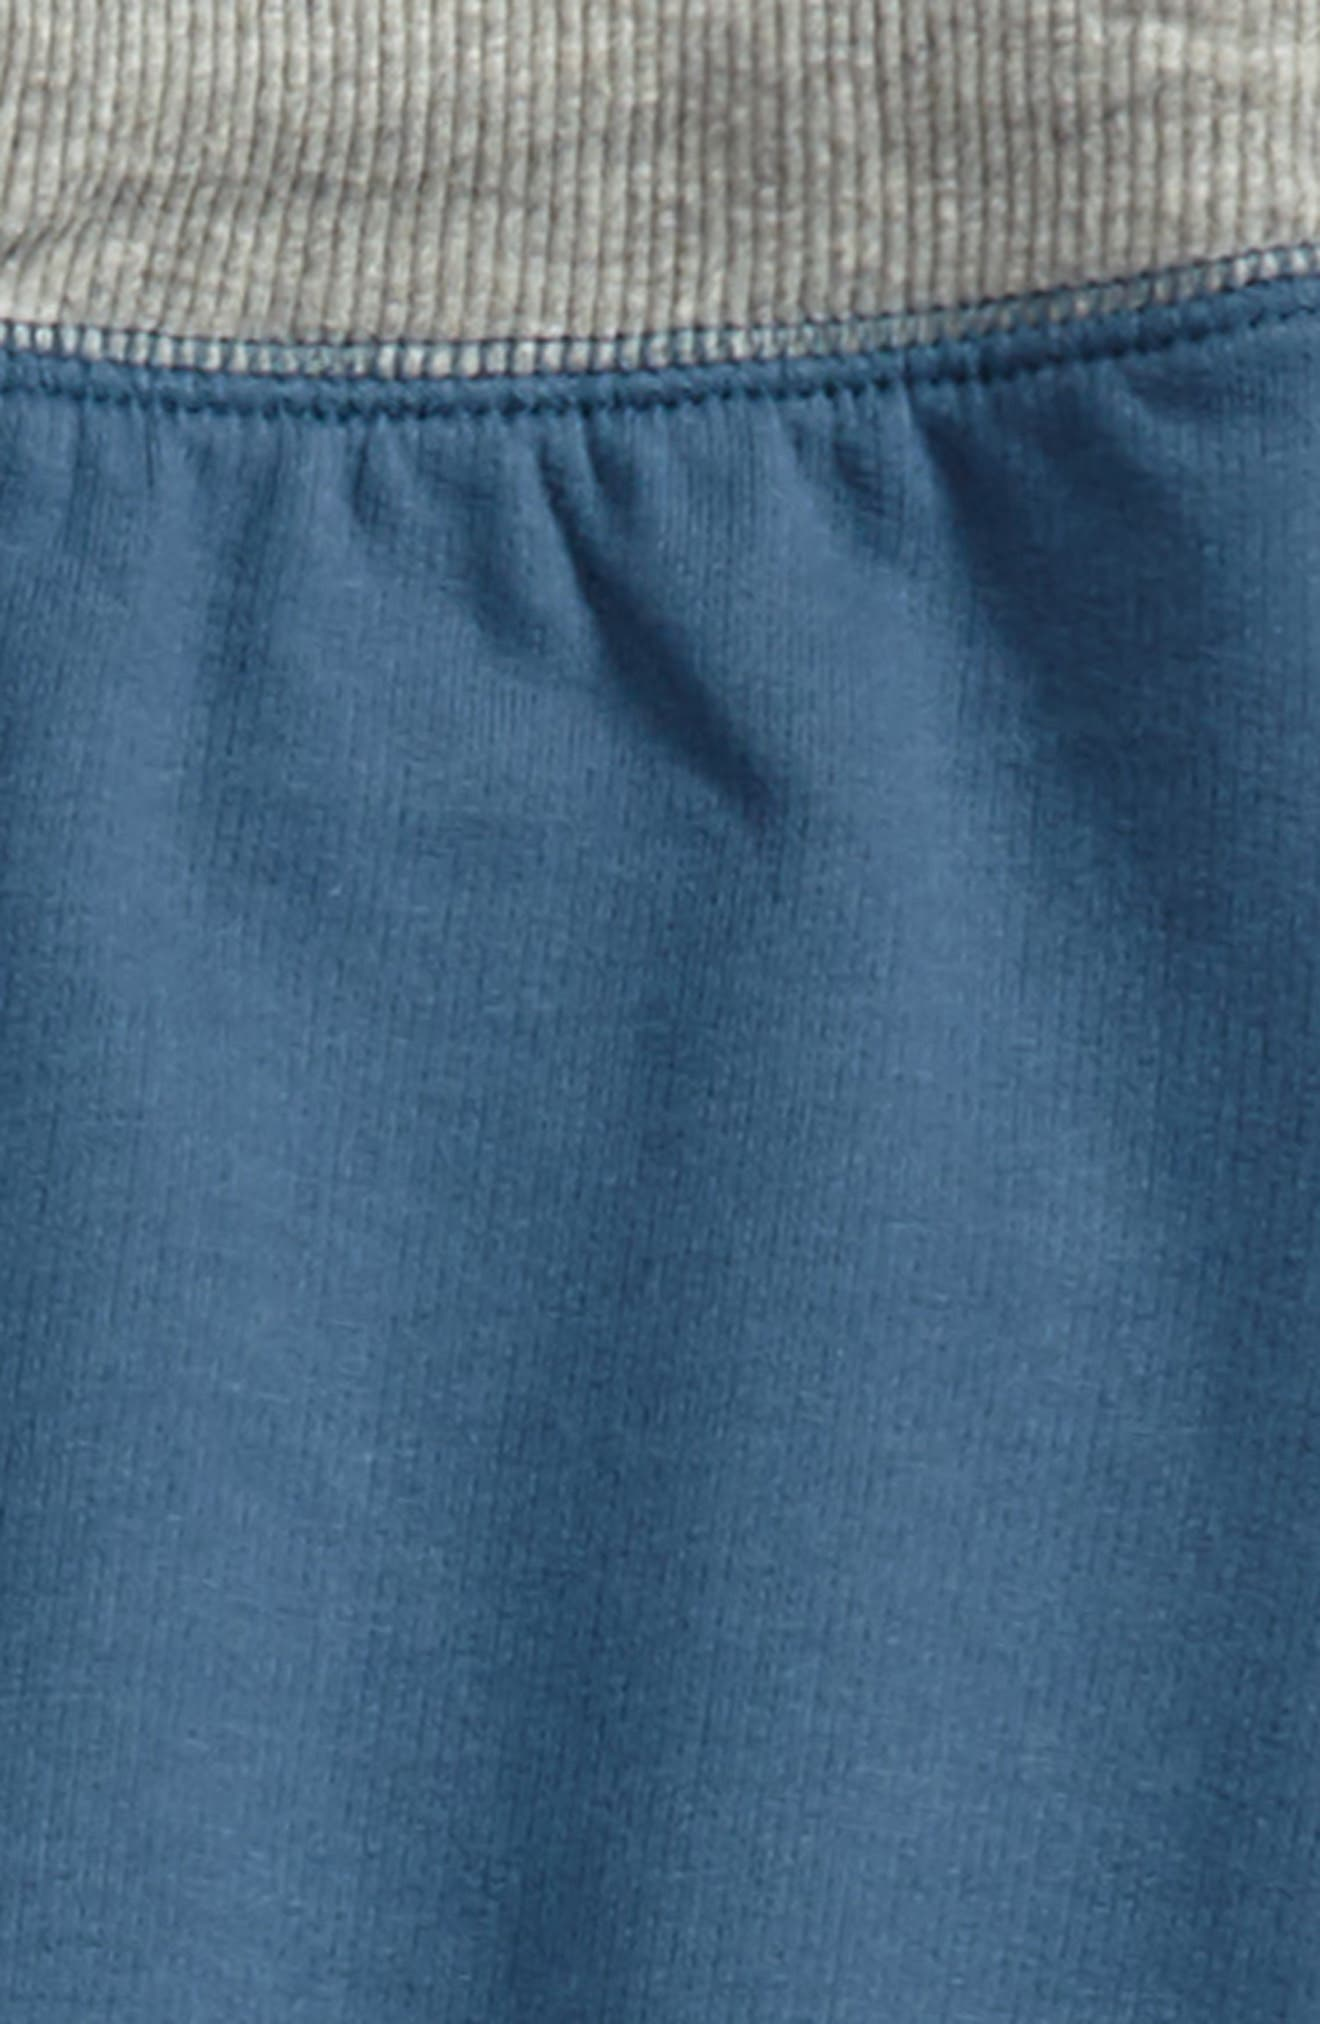 Sweatpants,                             Alternate thumbnail 2, color,                             Blue Star